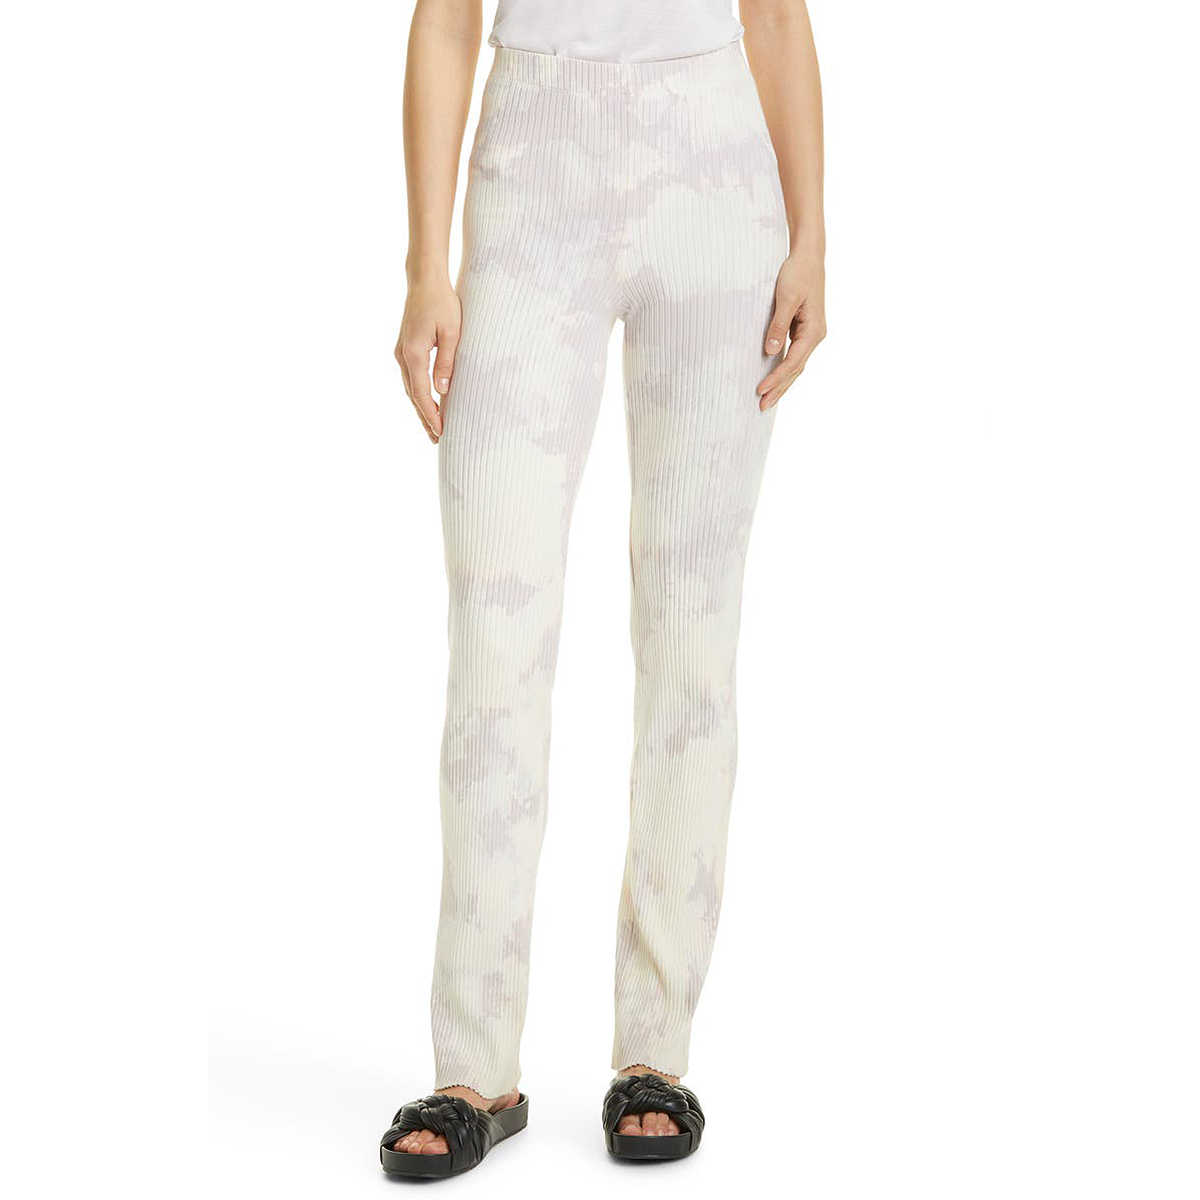 nordstrom-ribbed-clothing-pants